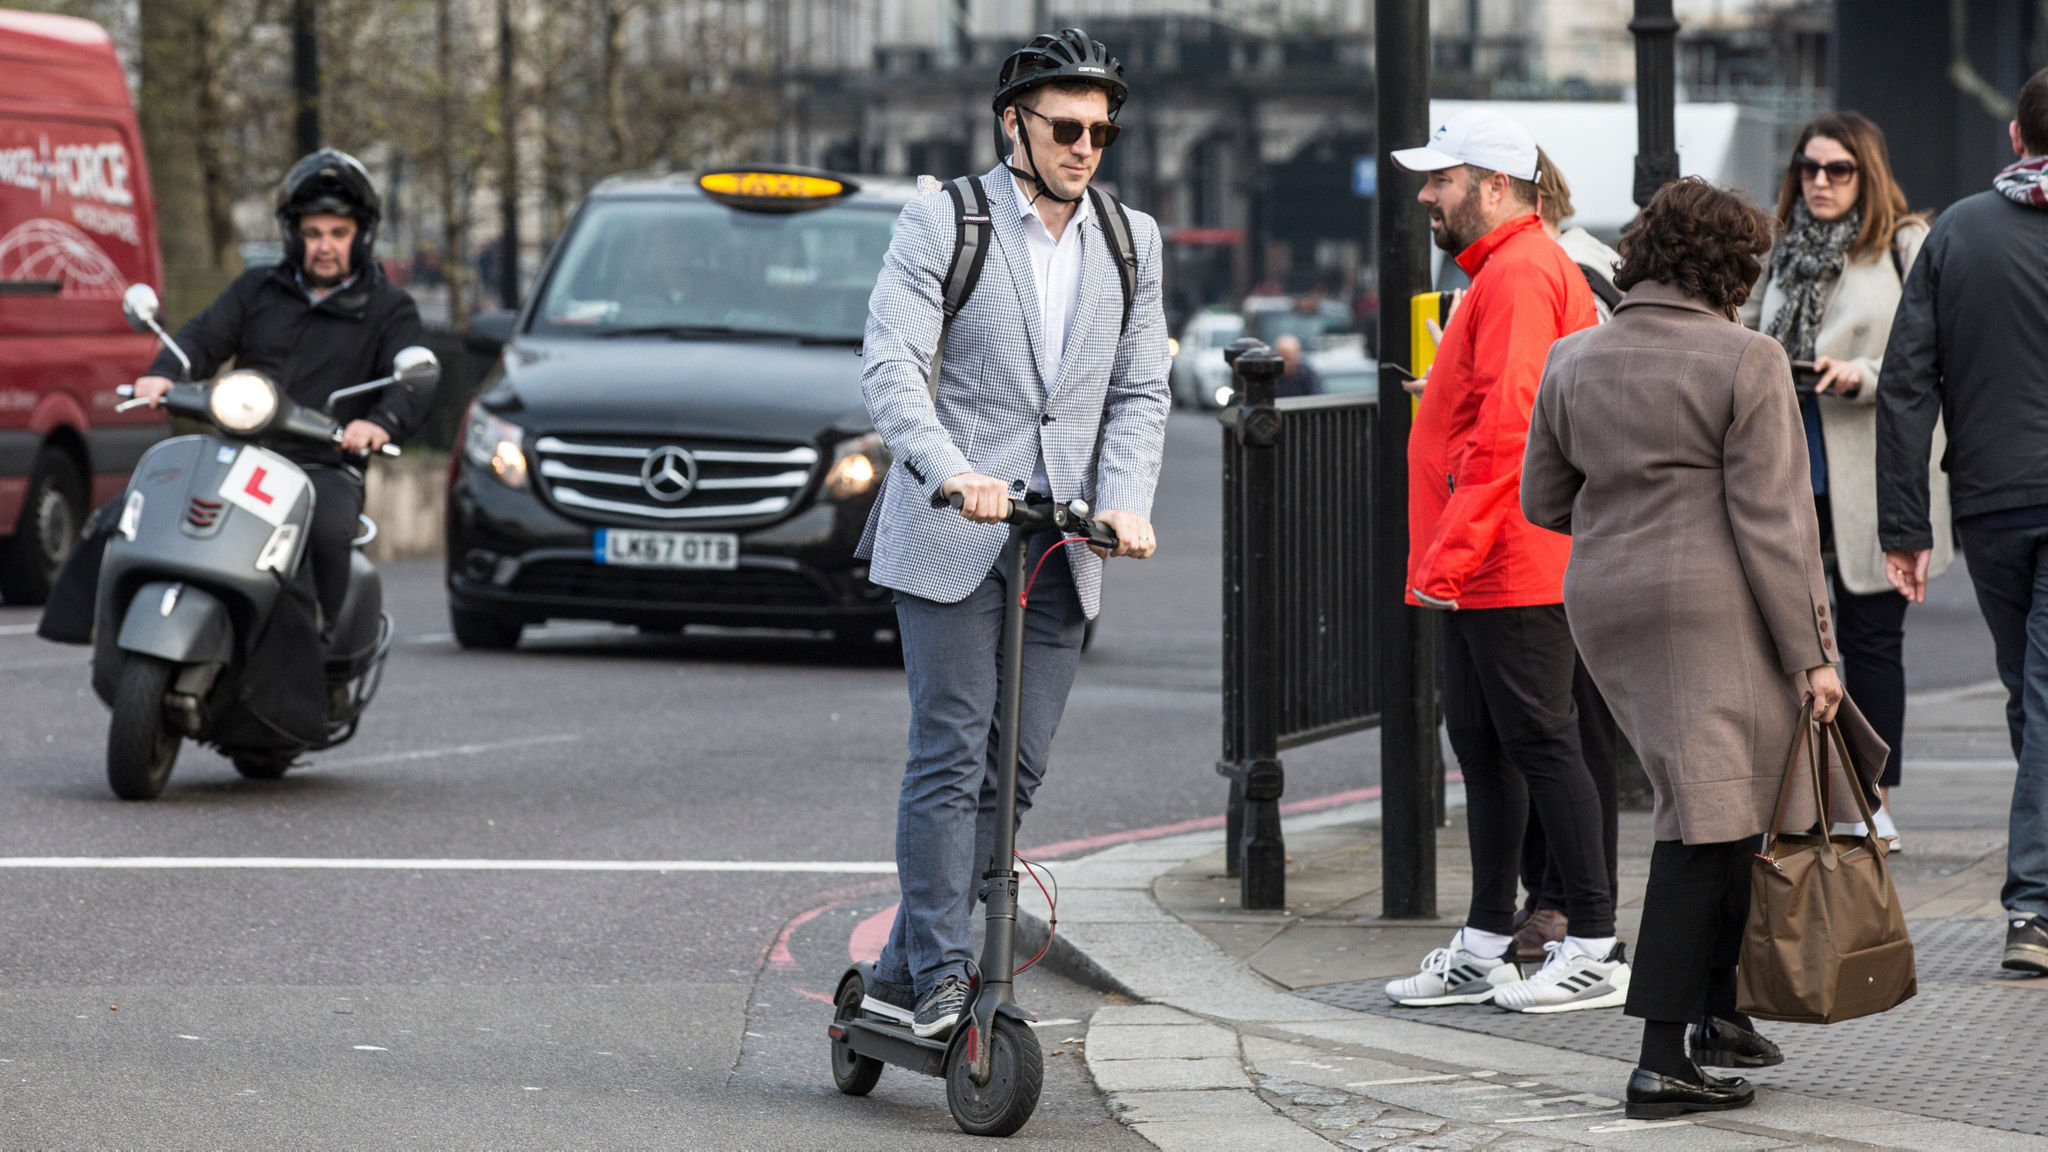 E-scooters to be allowed on roads in government trials | Financial Times